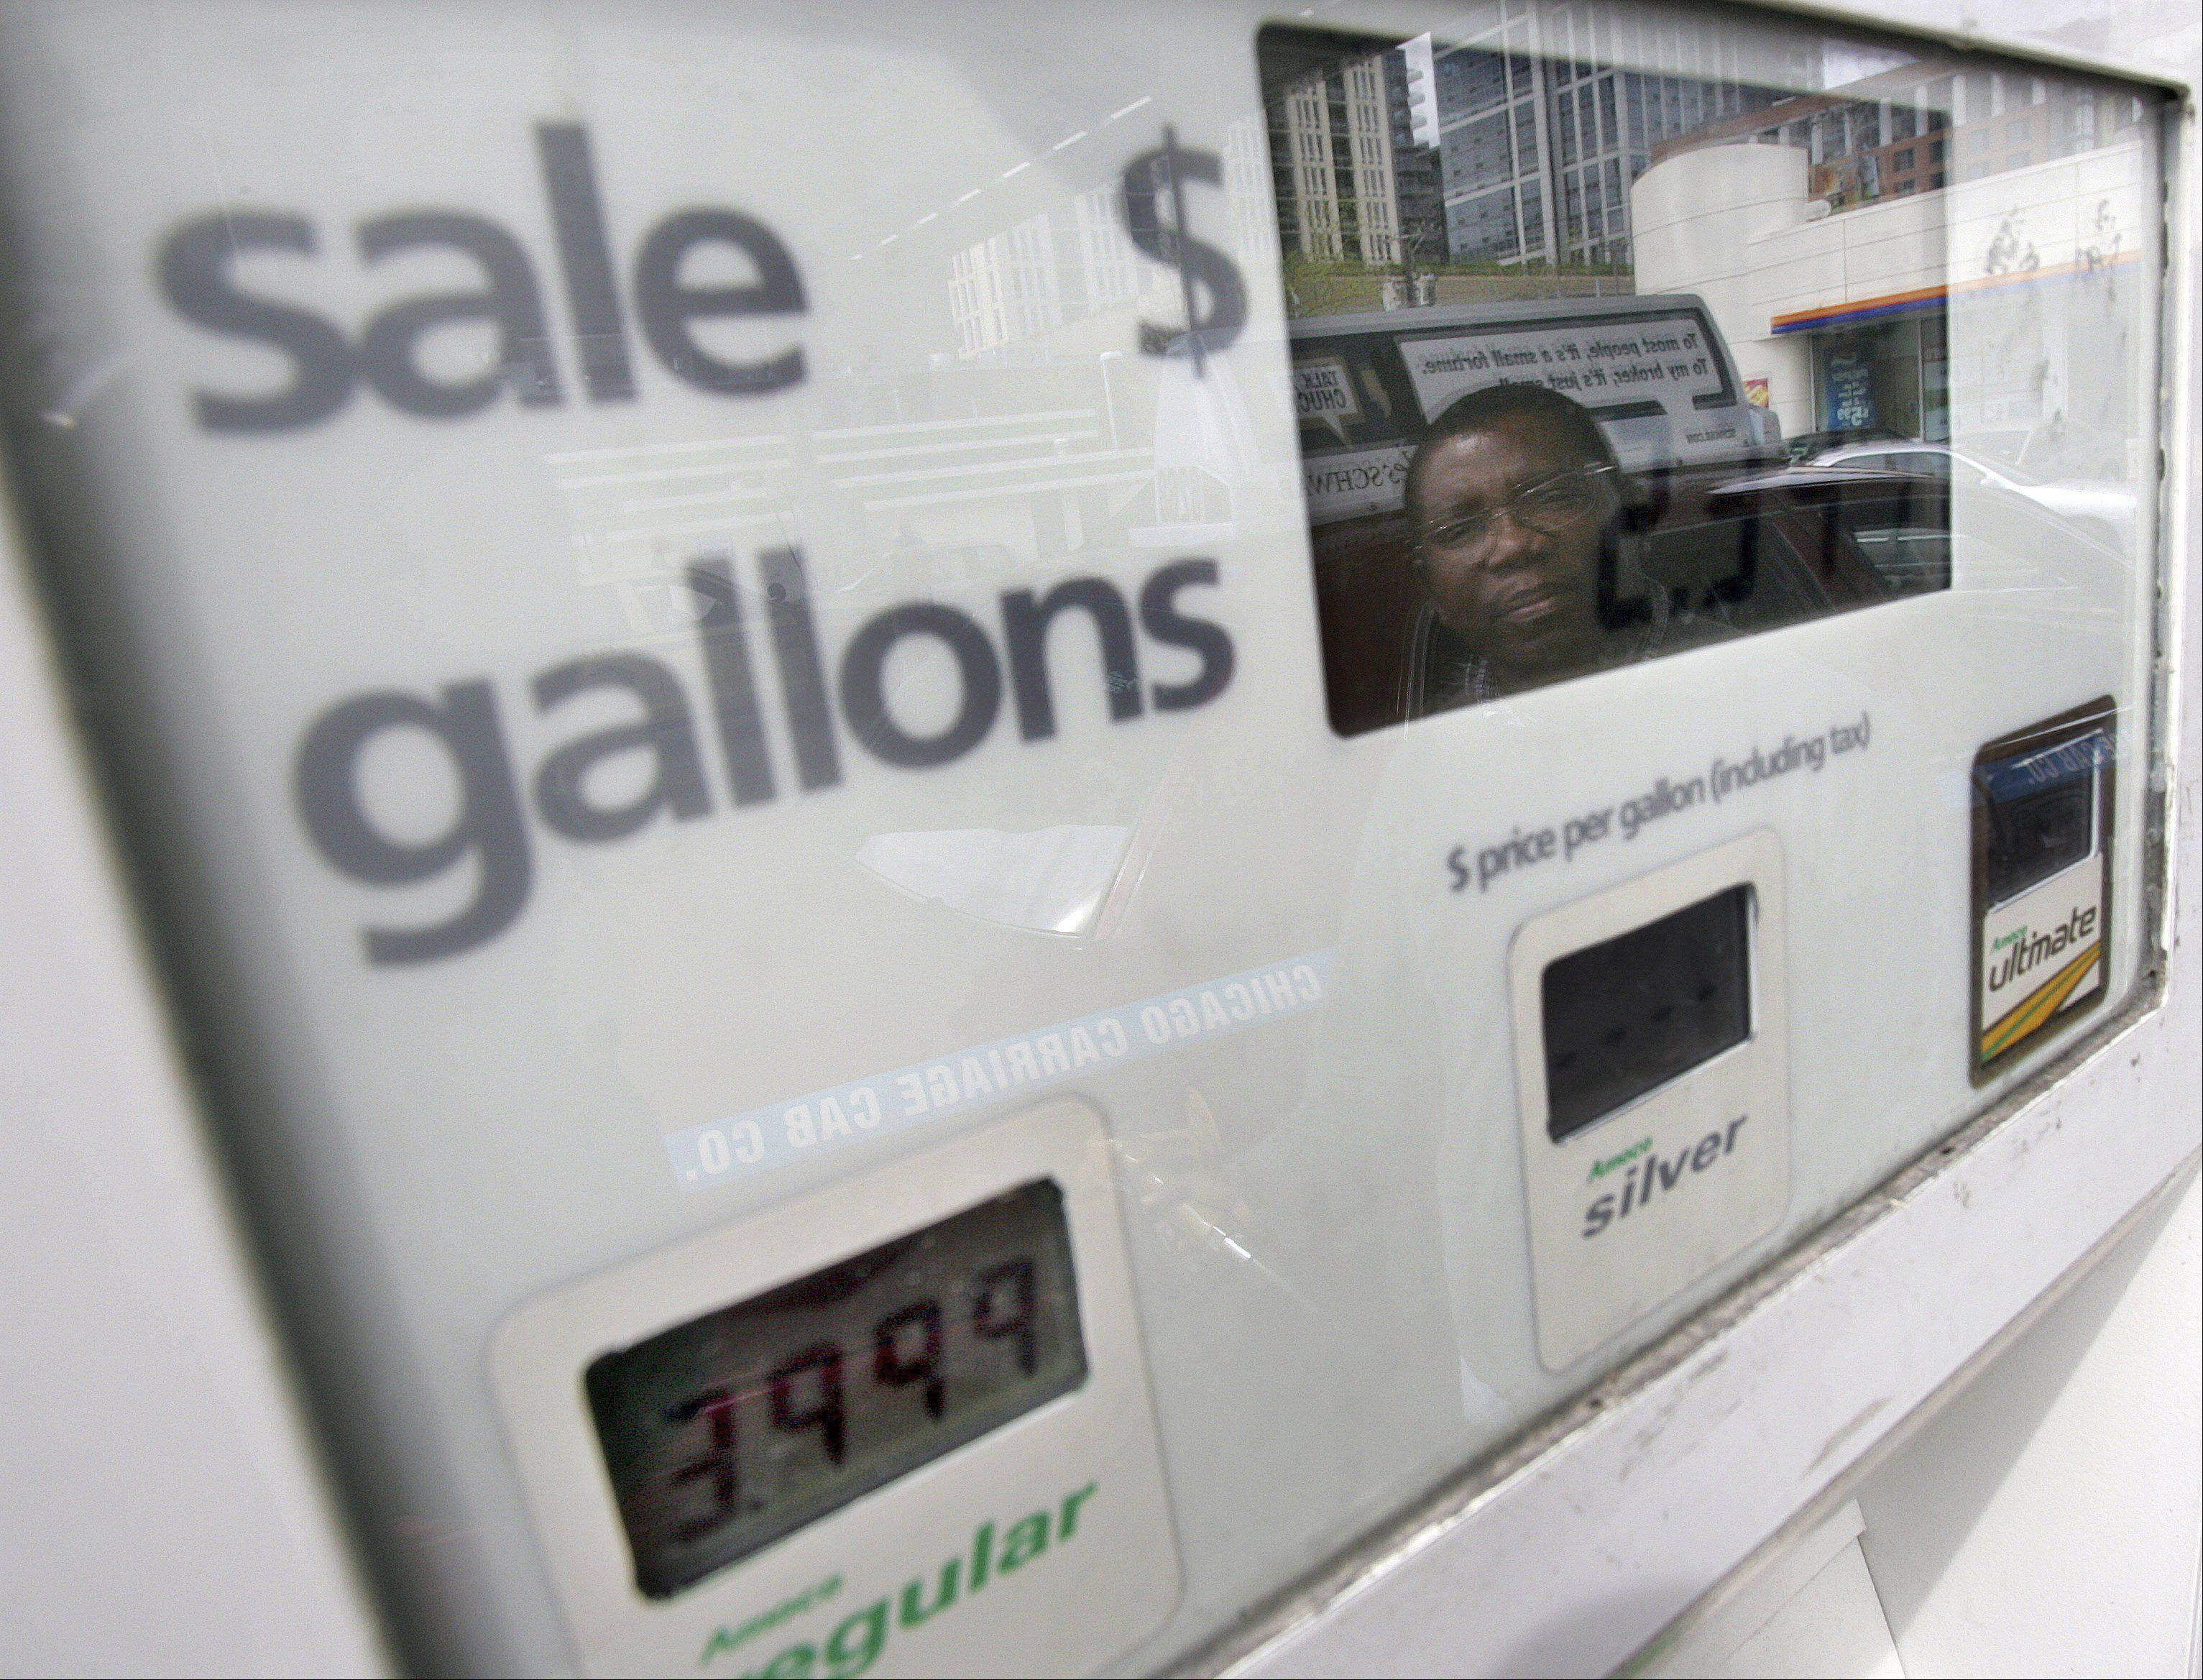 The average price for regular gasoline at U.S. pumps rose 6.68 cents a gallon in the past three weeks to $3.32 as a rally in crude prices led refiners to boost costs for fuel marketers, according to Lundberg Survey Inc.